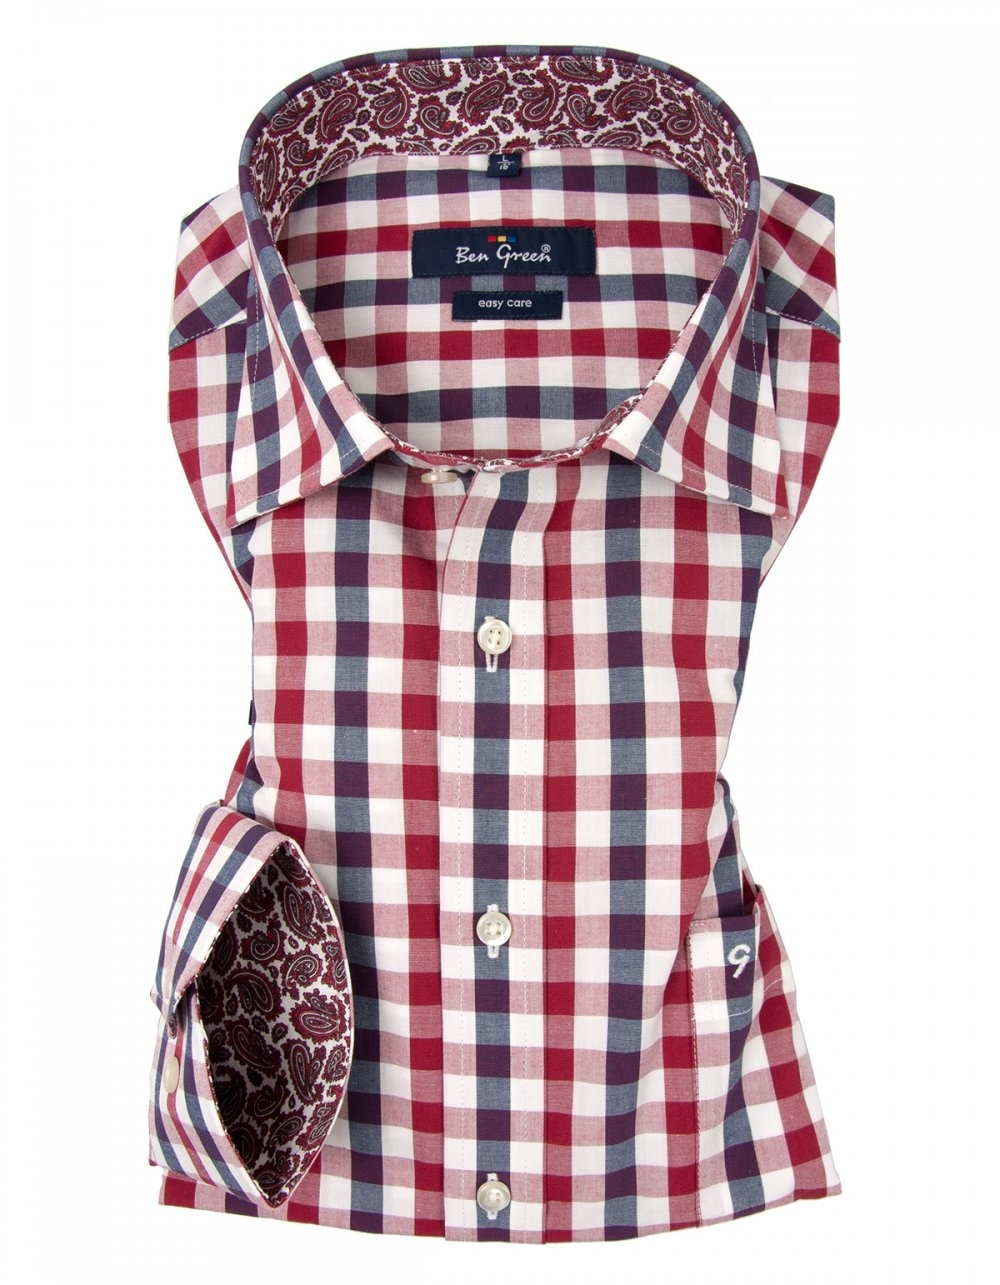 Ben green pure cotton red check shirt easy care for Red and green checked shirt